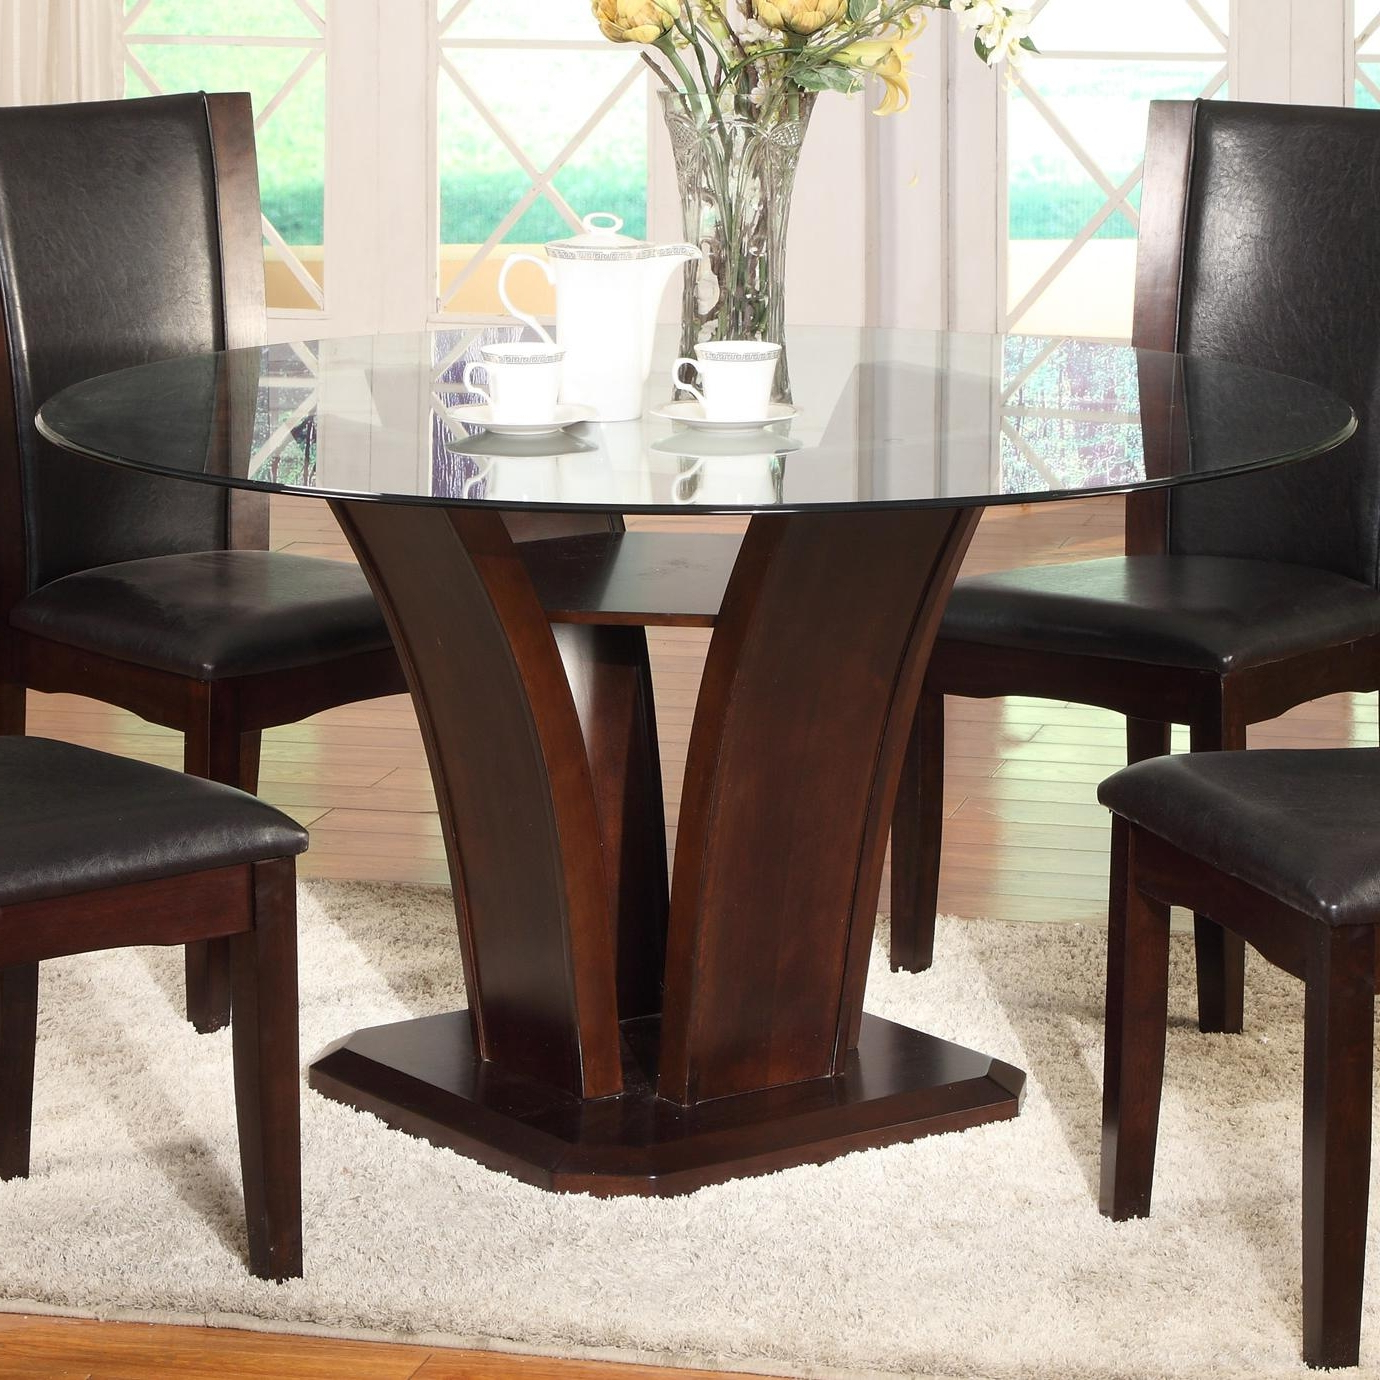 Round Dining Tables With Glass Top Throughout Most Popular Round Dining Table Crown Mark Camelia Espresso Glass Top (View 6 of 30)